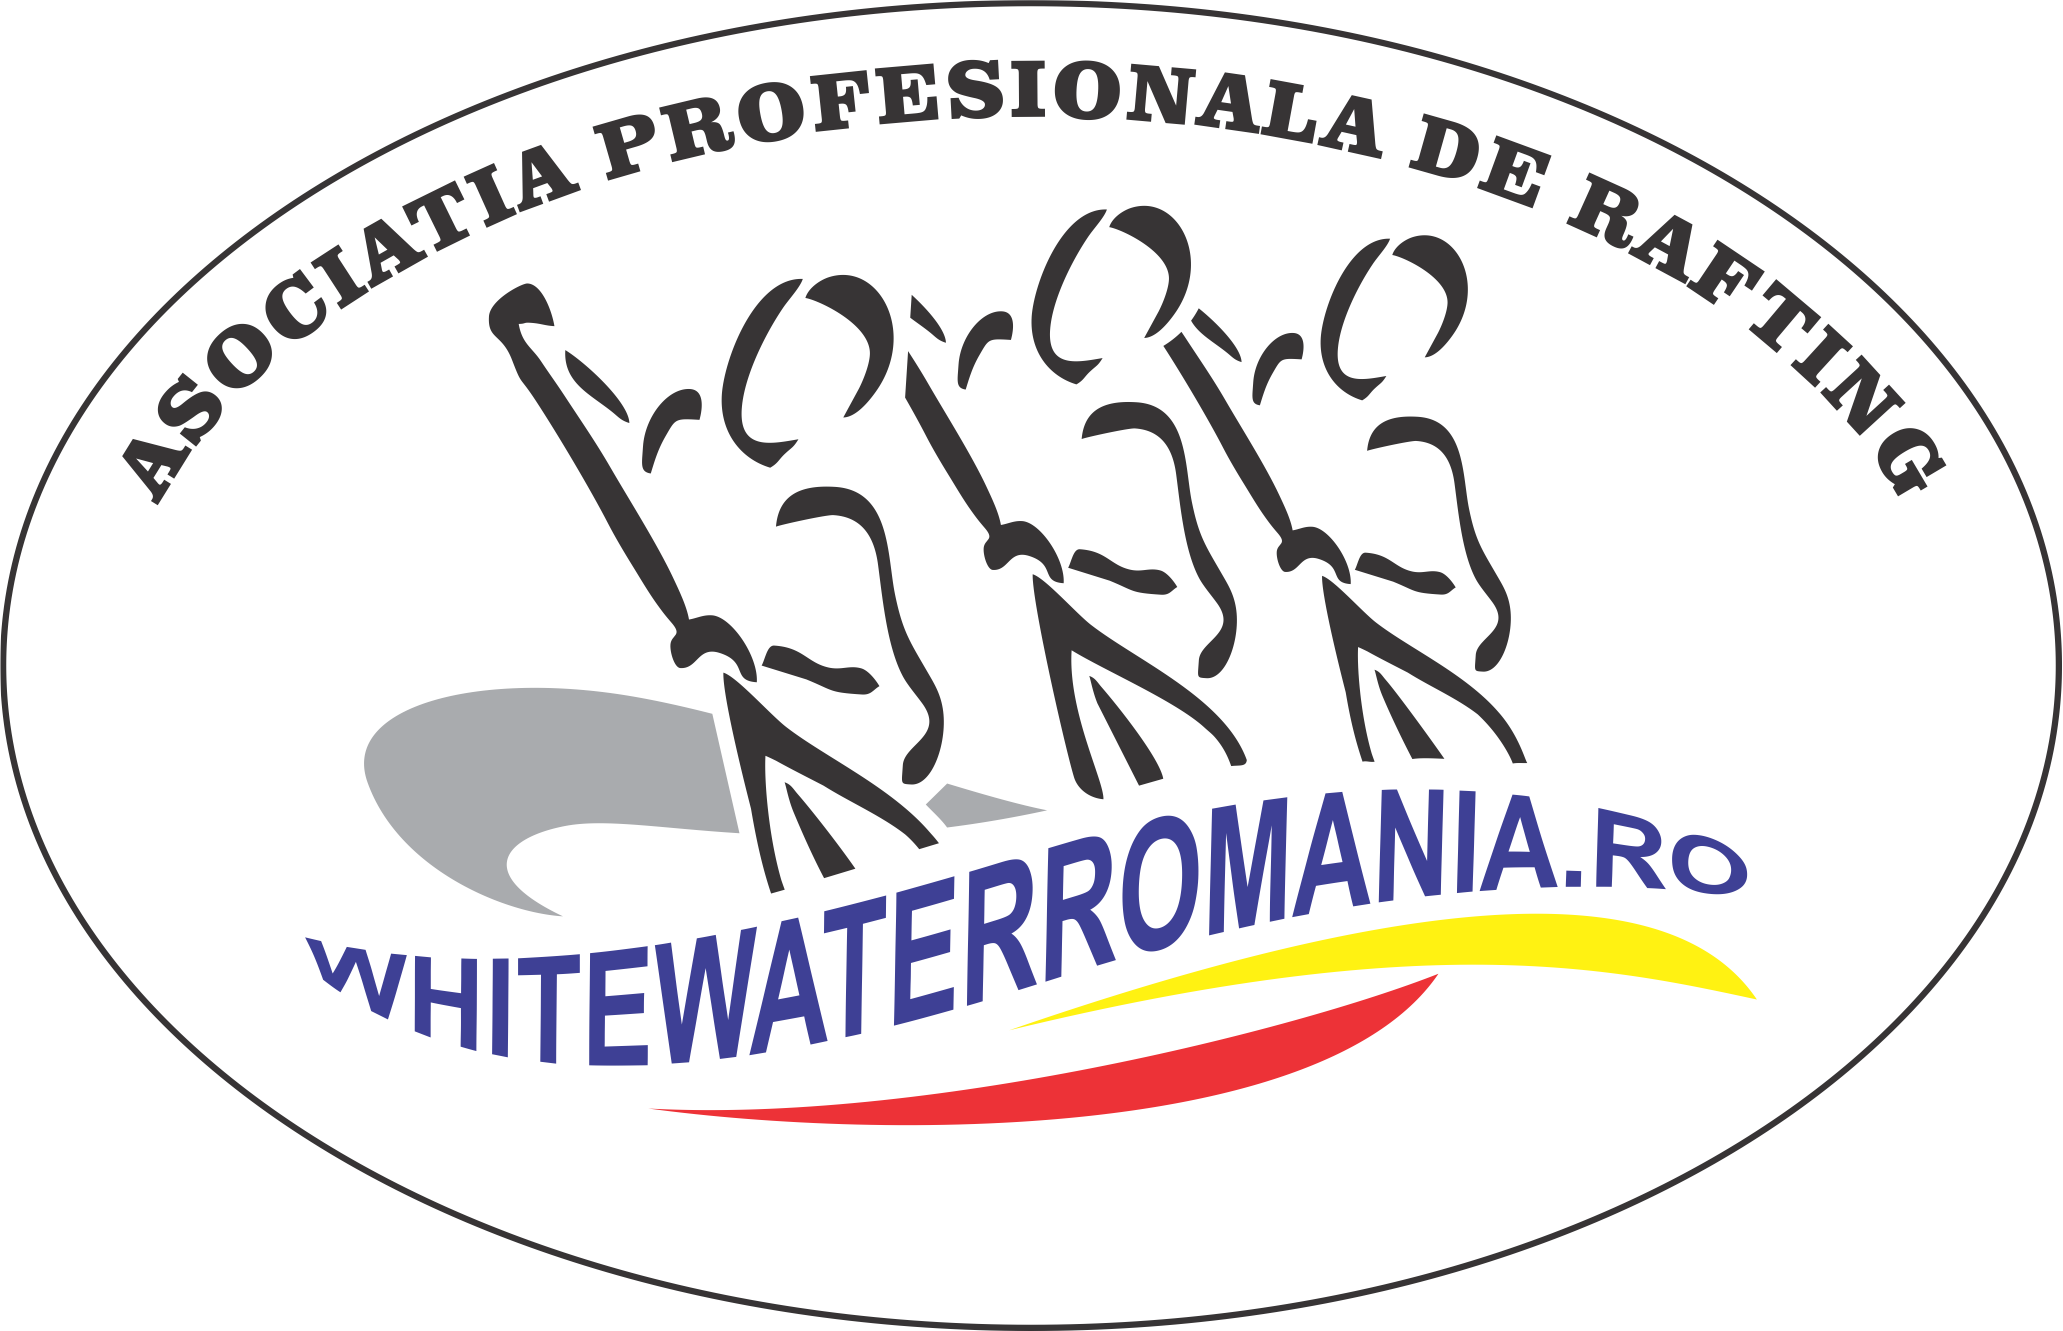 Whitewater Romania